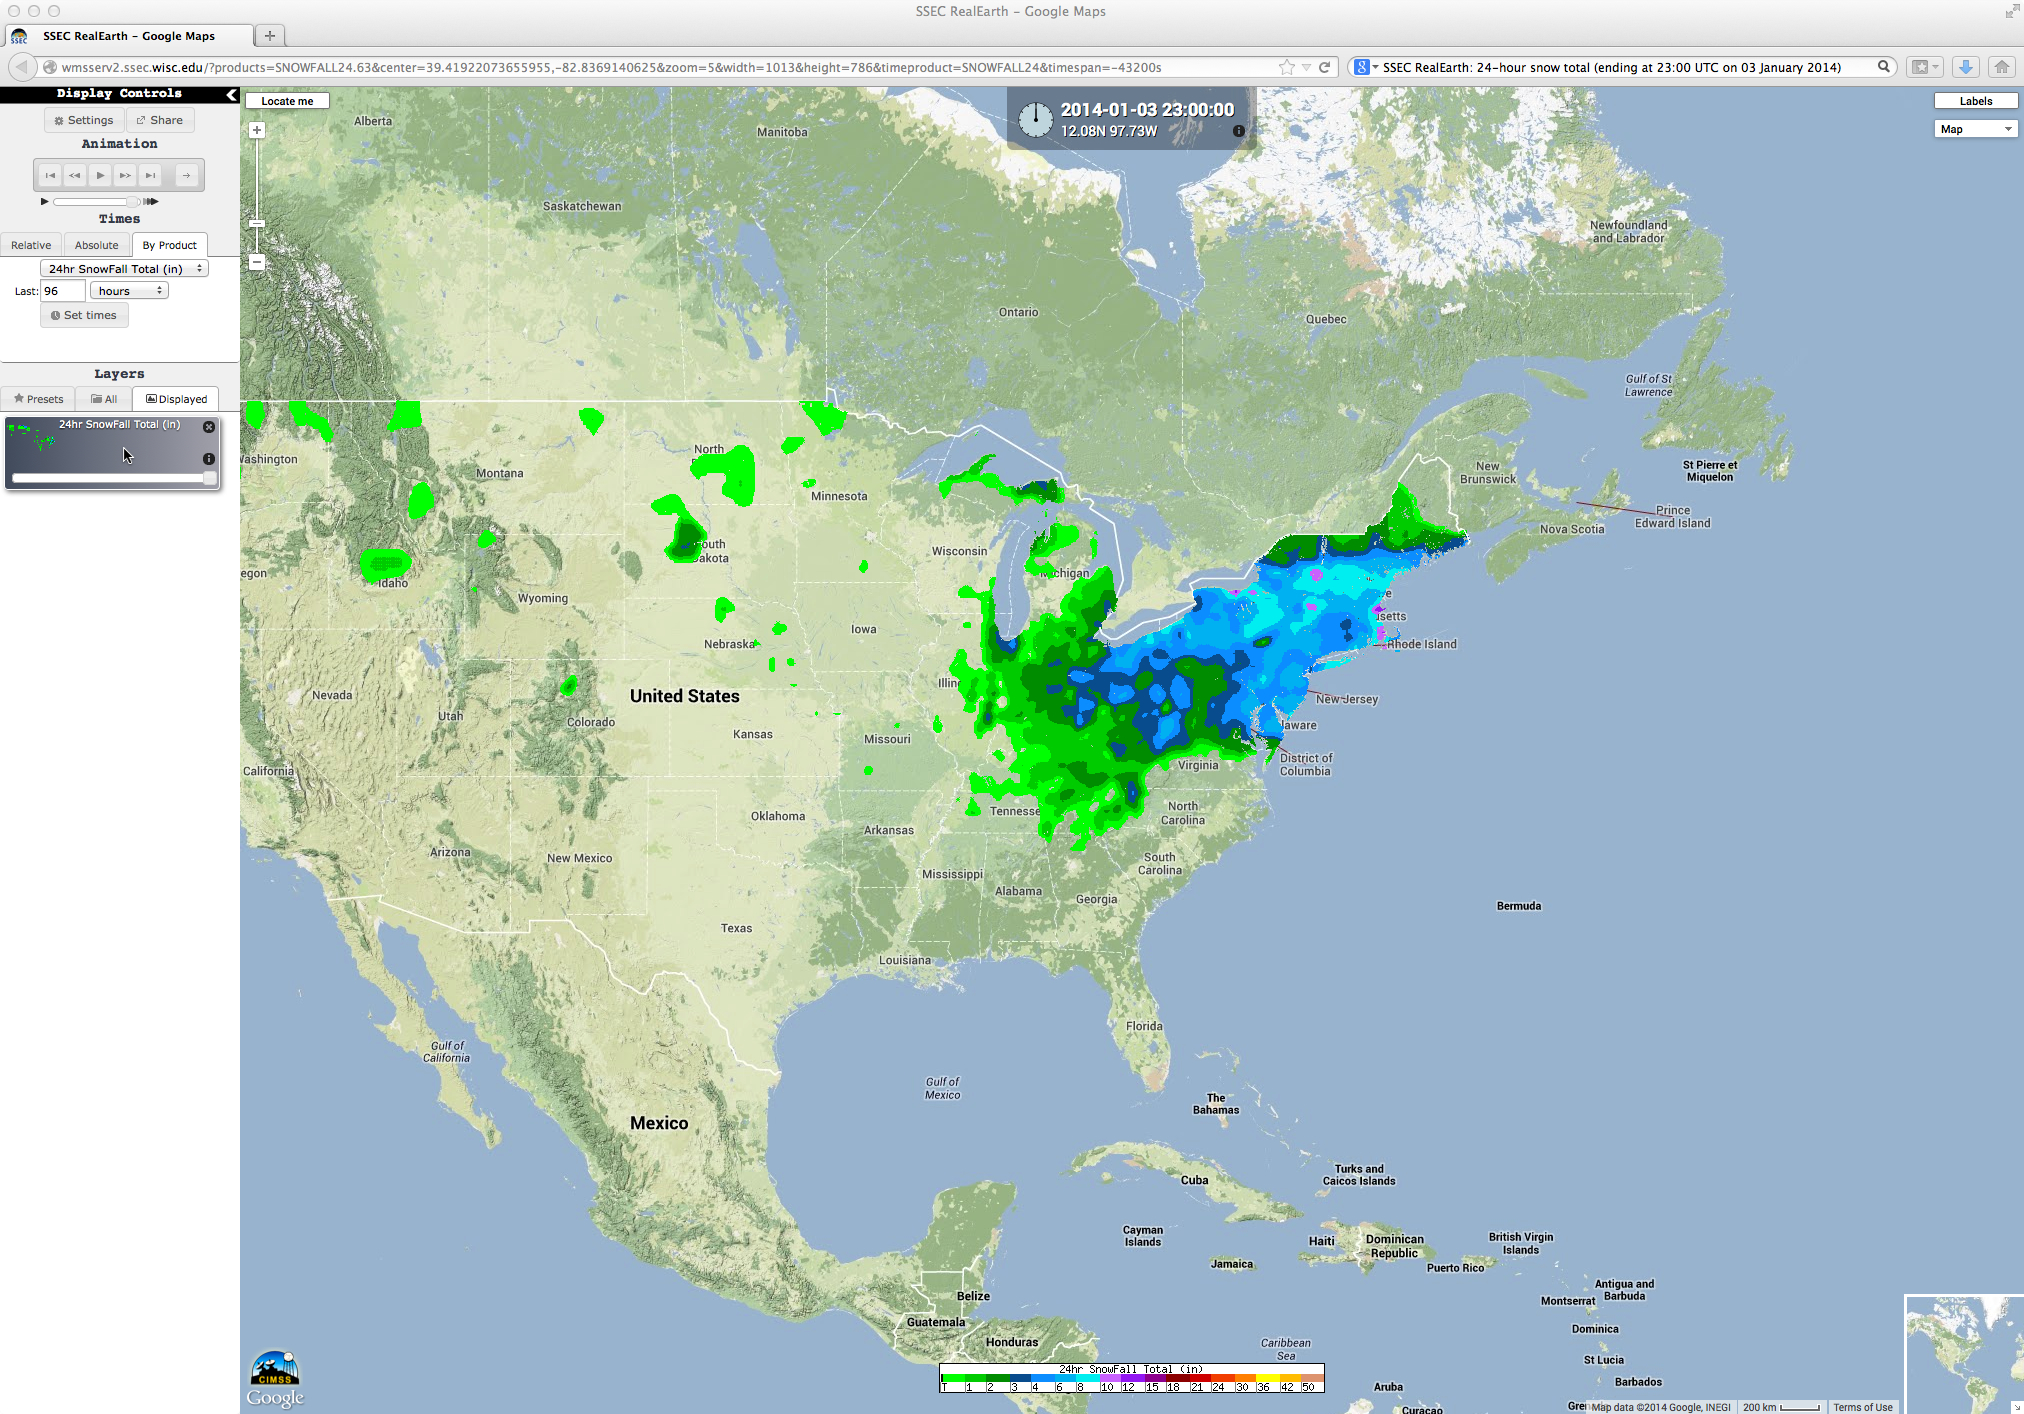 SSEC RealEarth 24-hour snowfall total map